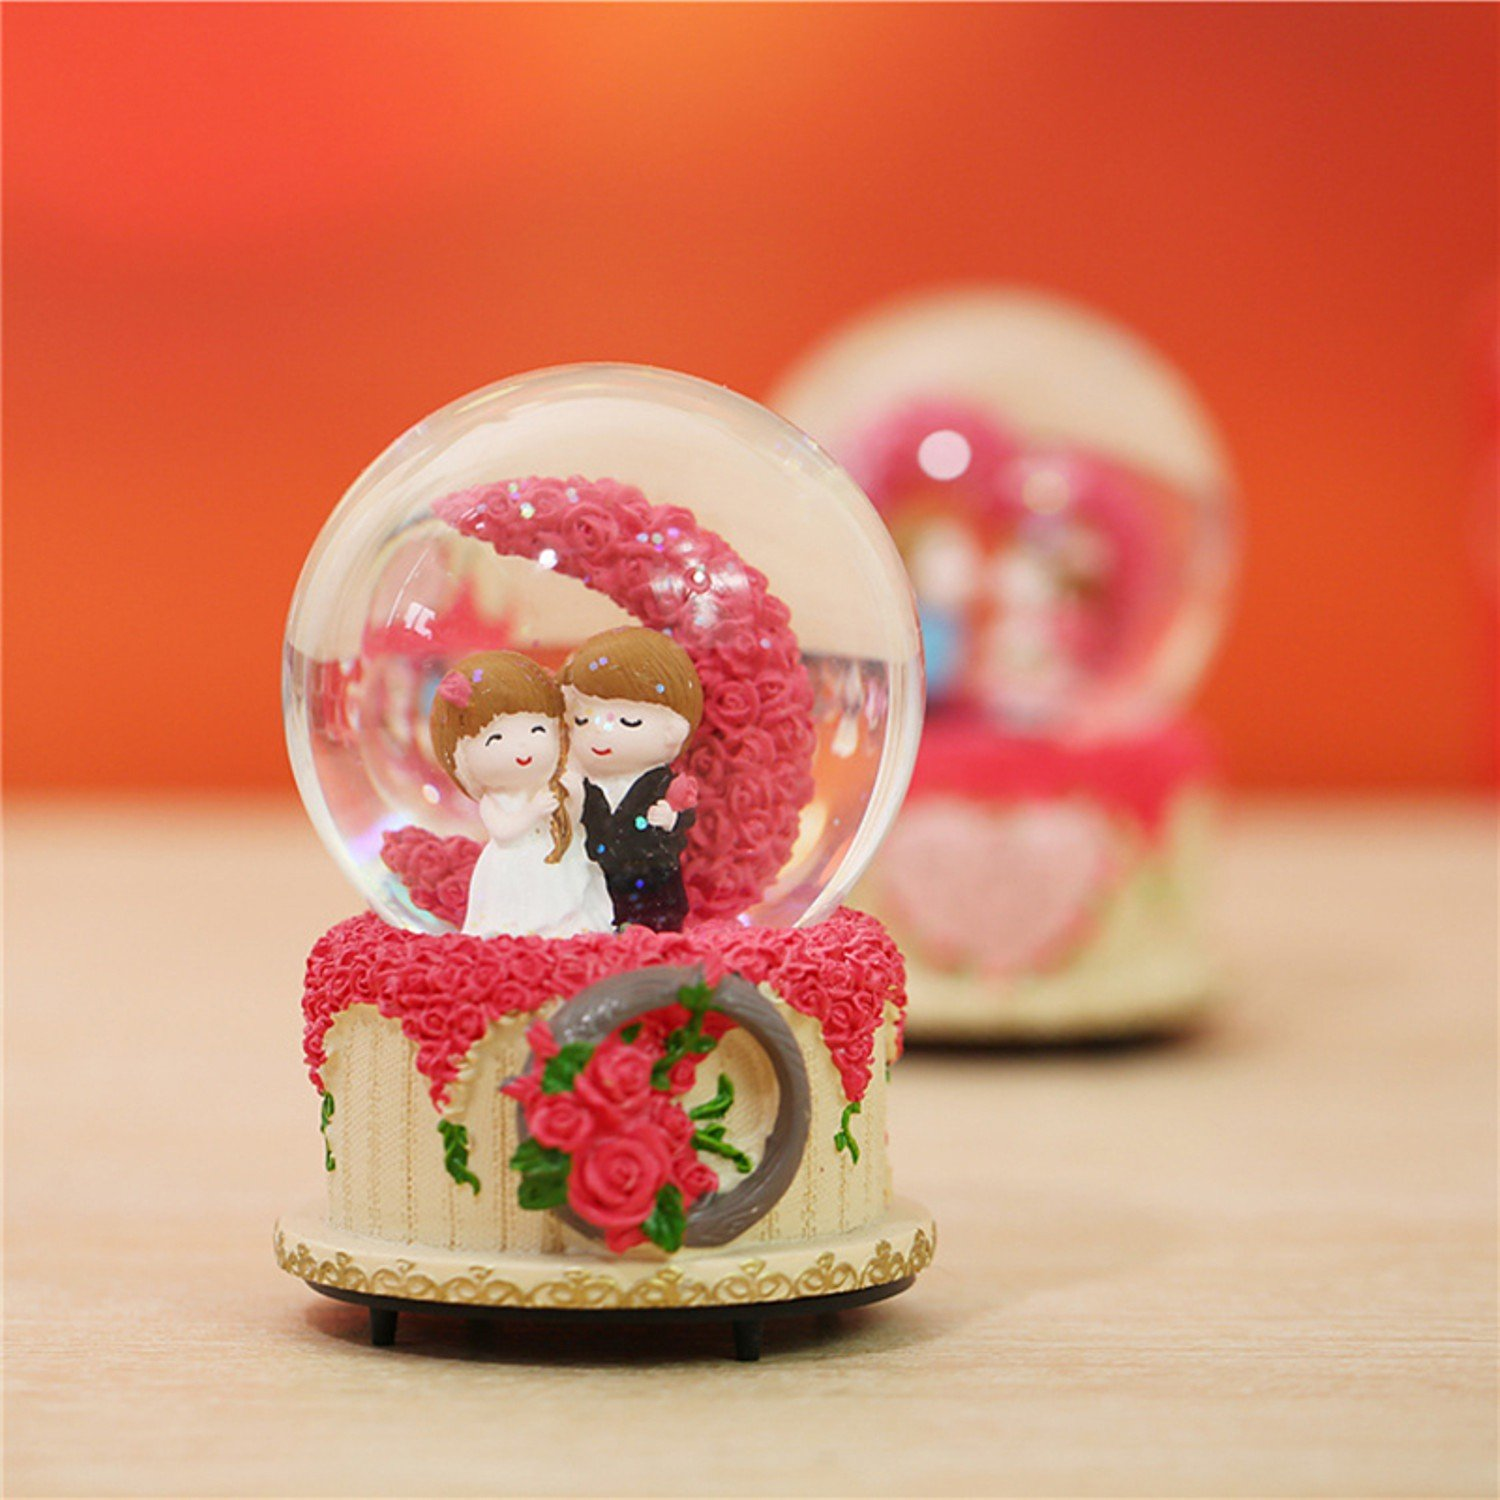 Romantic Valentine Gifts For Girlfriend Boyfriend Crystal Globe Special Birthday For Couple Wife Husband With Light And Music Amazon In Home Kitchen